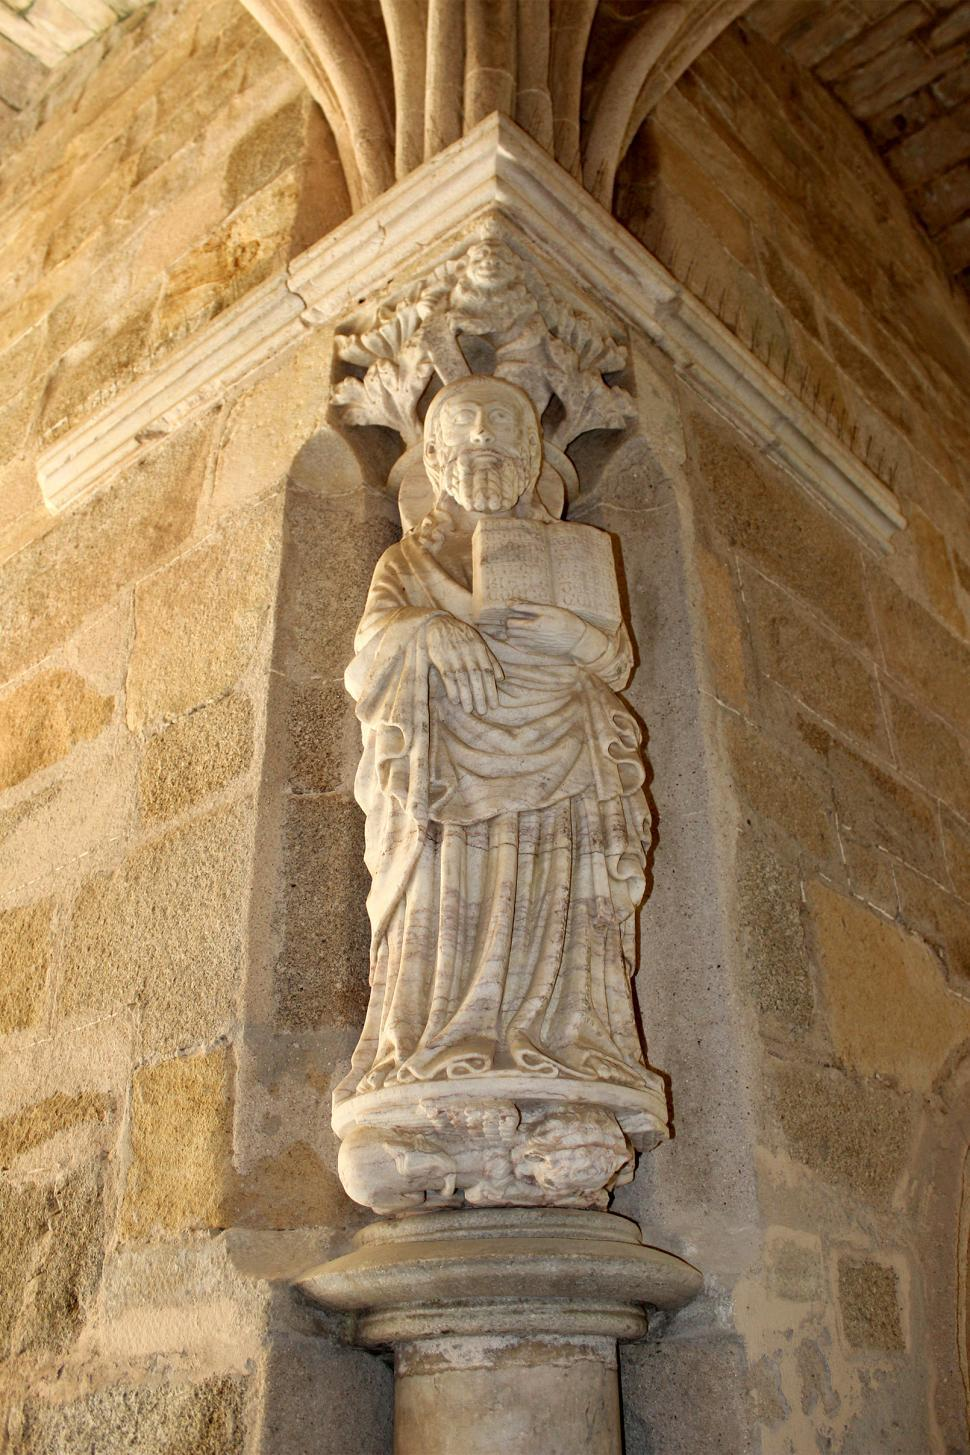 Download Free Stock Photo of Gothic Statue - Medieval Marble Statue of Saint Matthew the Apos